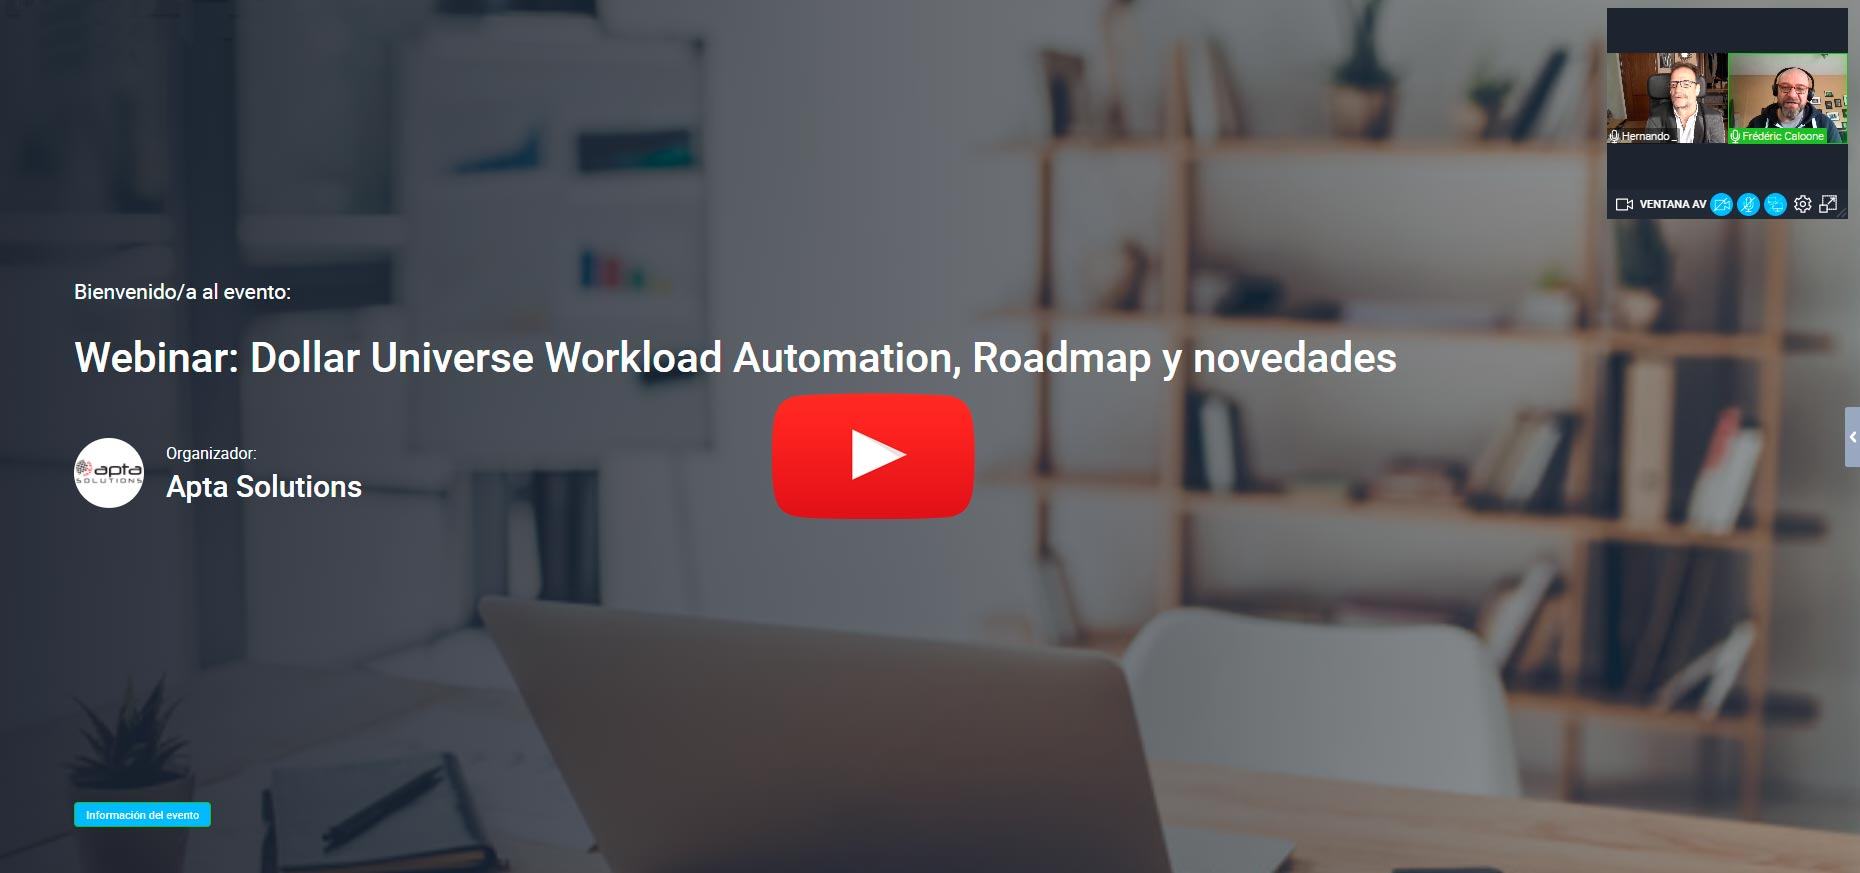 webinar dollar universe workload automation